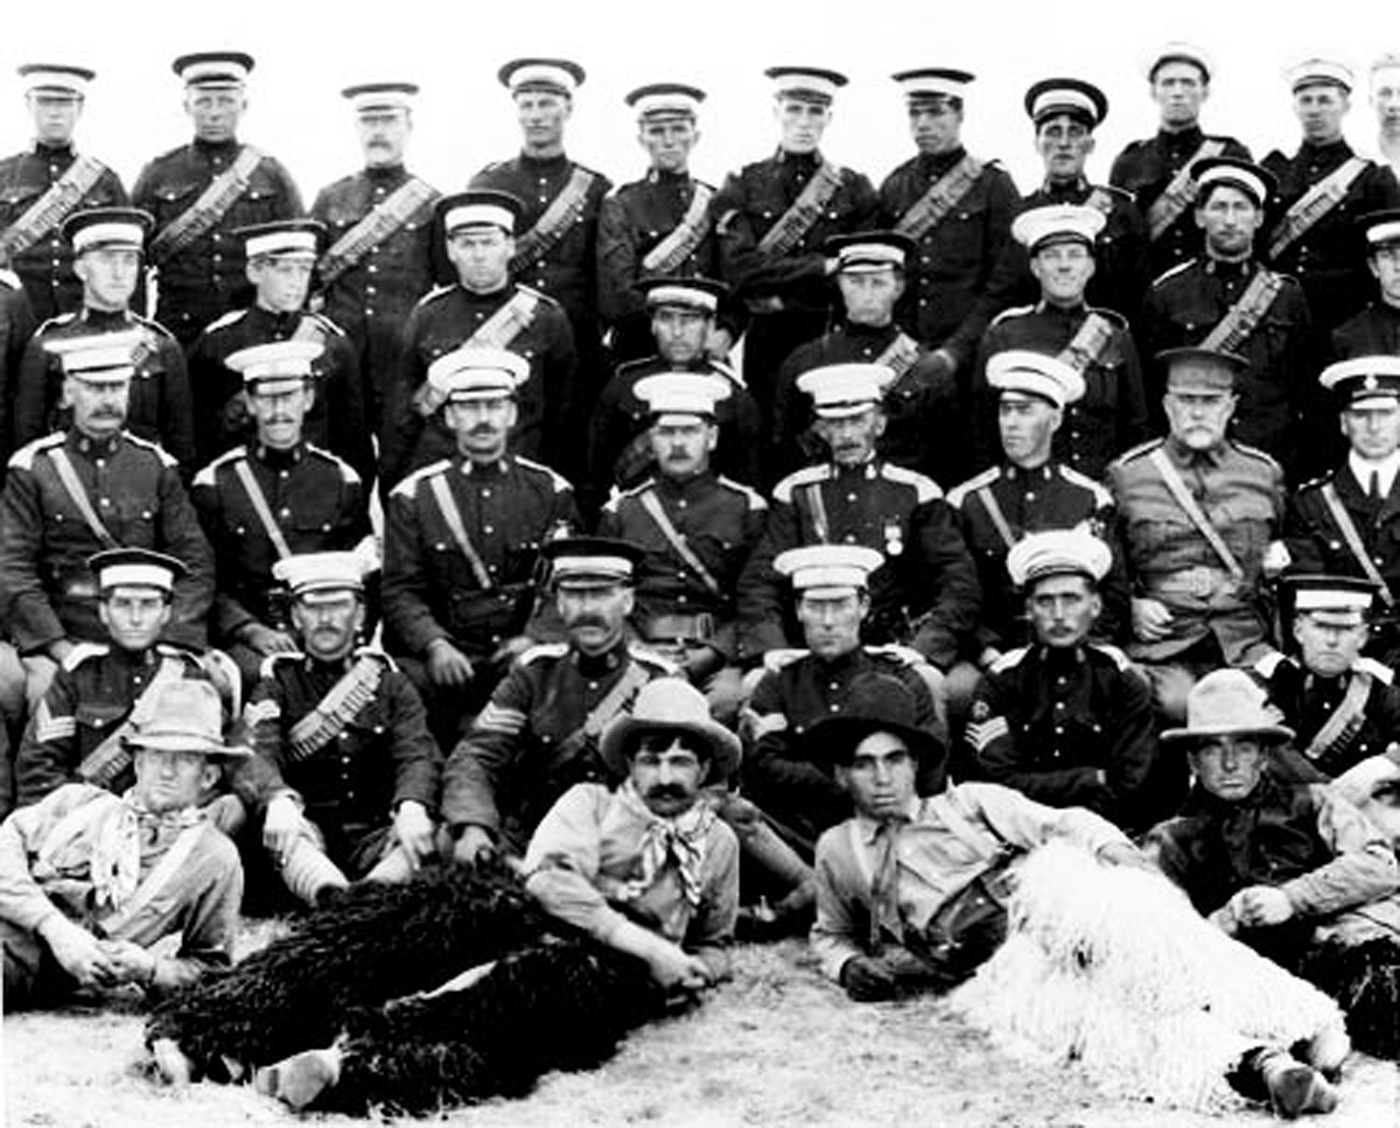 Saskatchewan's 27th Light Horse Regiment, 1914